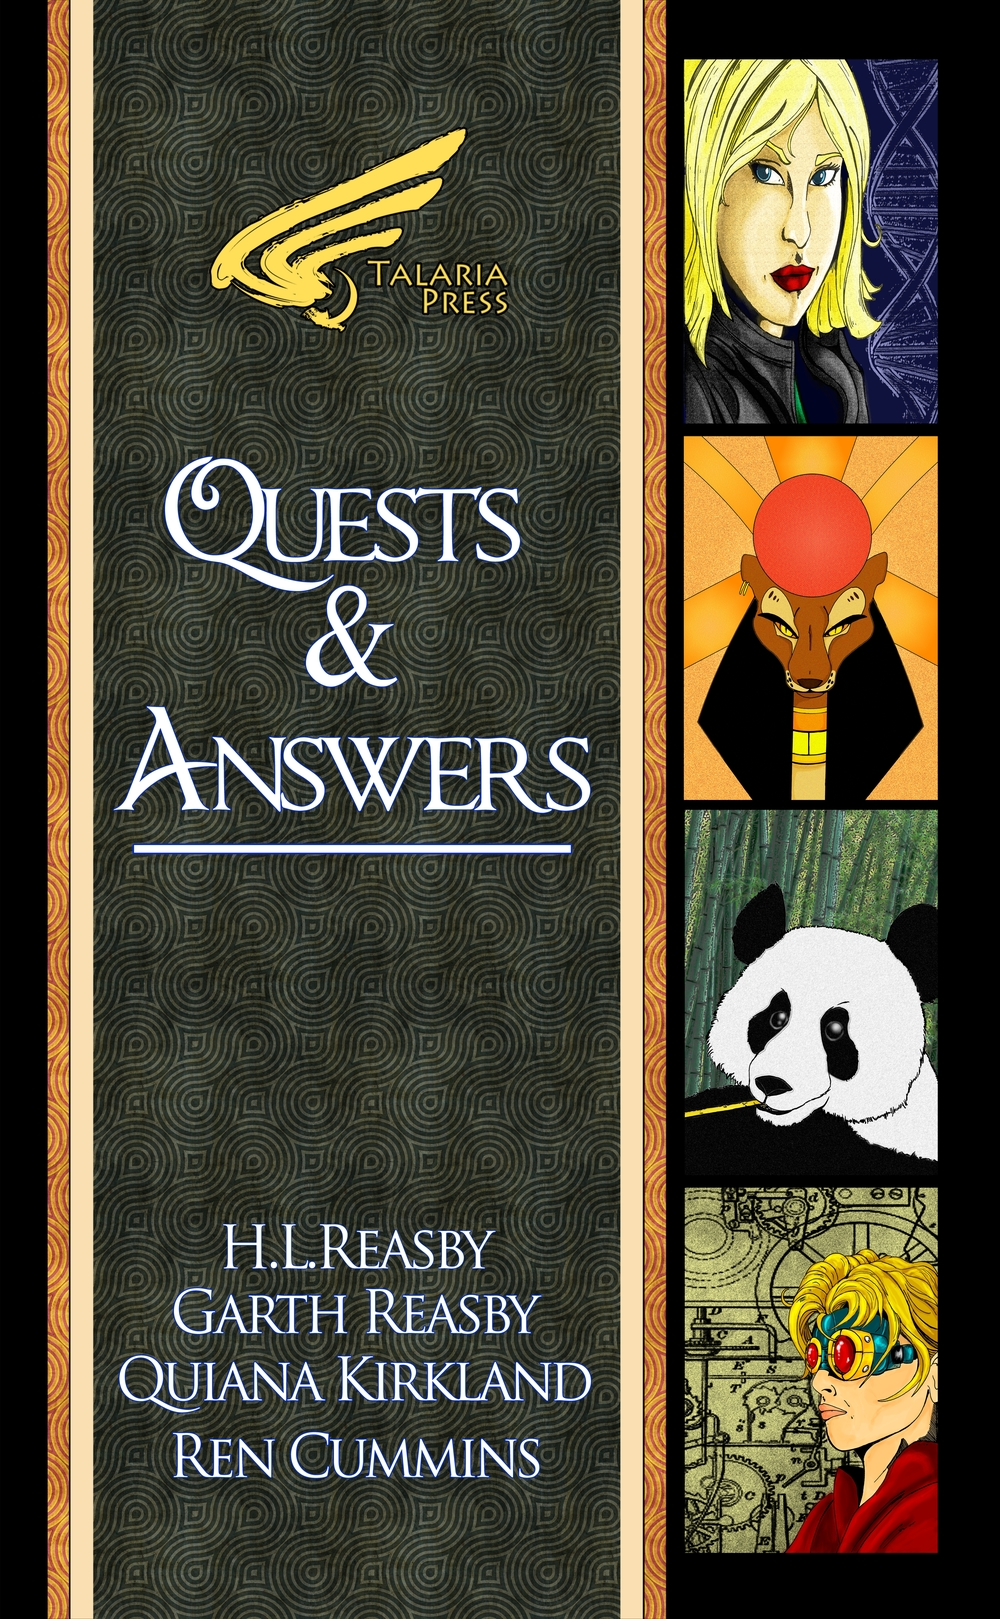 Quests & Answers